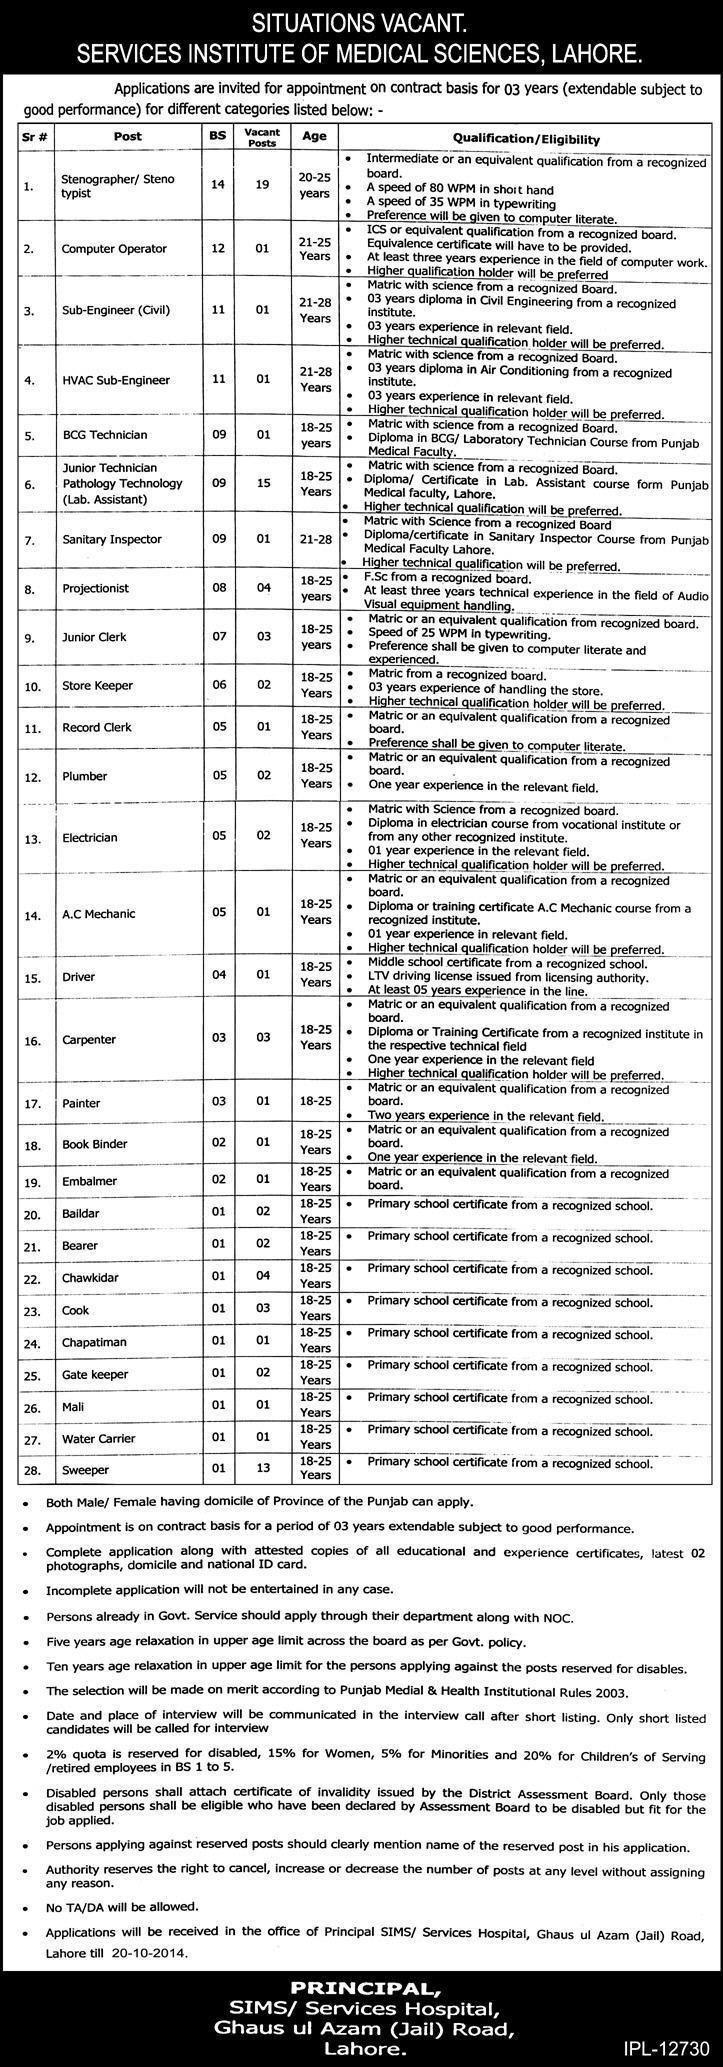 Services Institute of Medical Sciences Lahore Jobs 2014 October Stenographers, Lab Assistants & Others